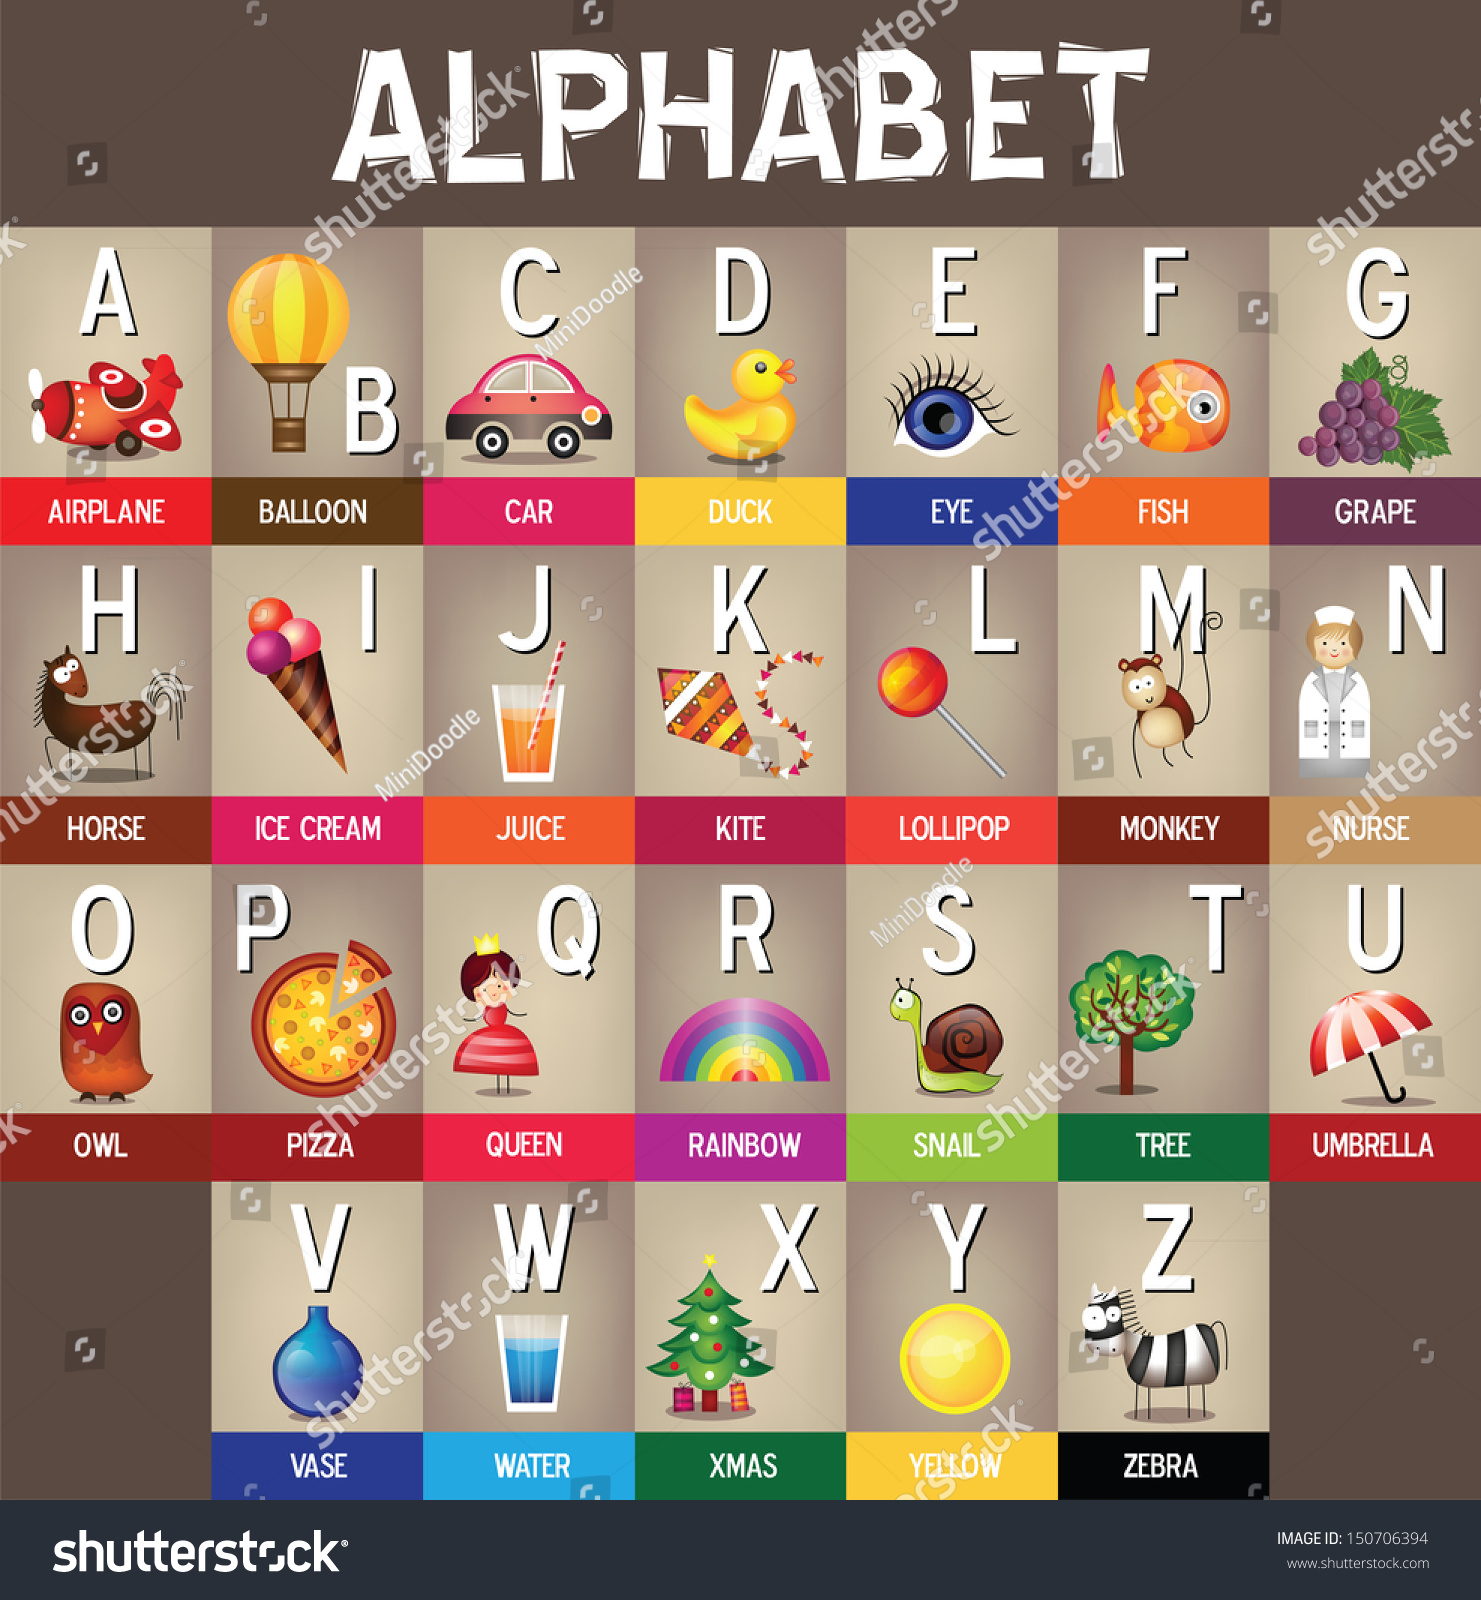 Alphabet Images Pictures amp Photos  CrystalGraphics